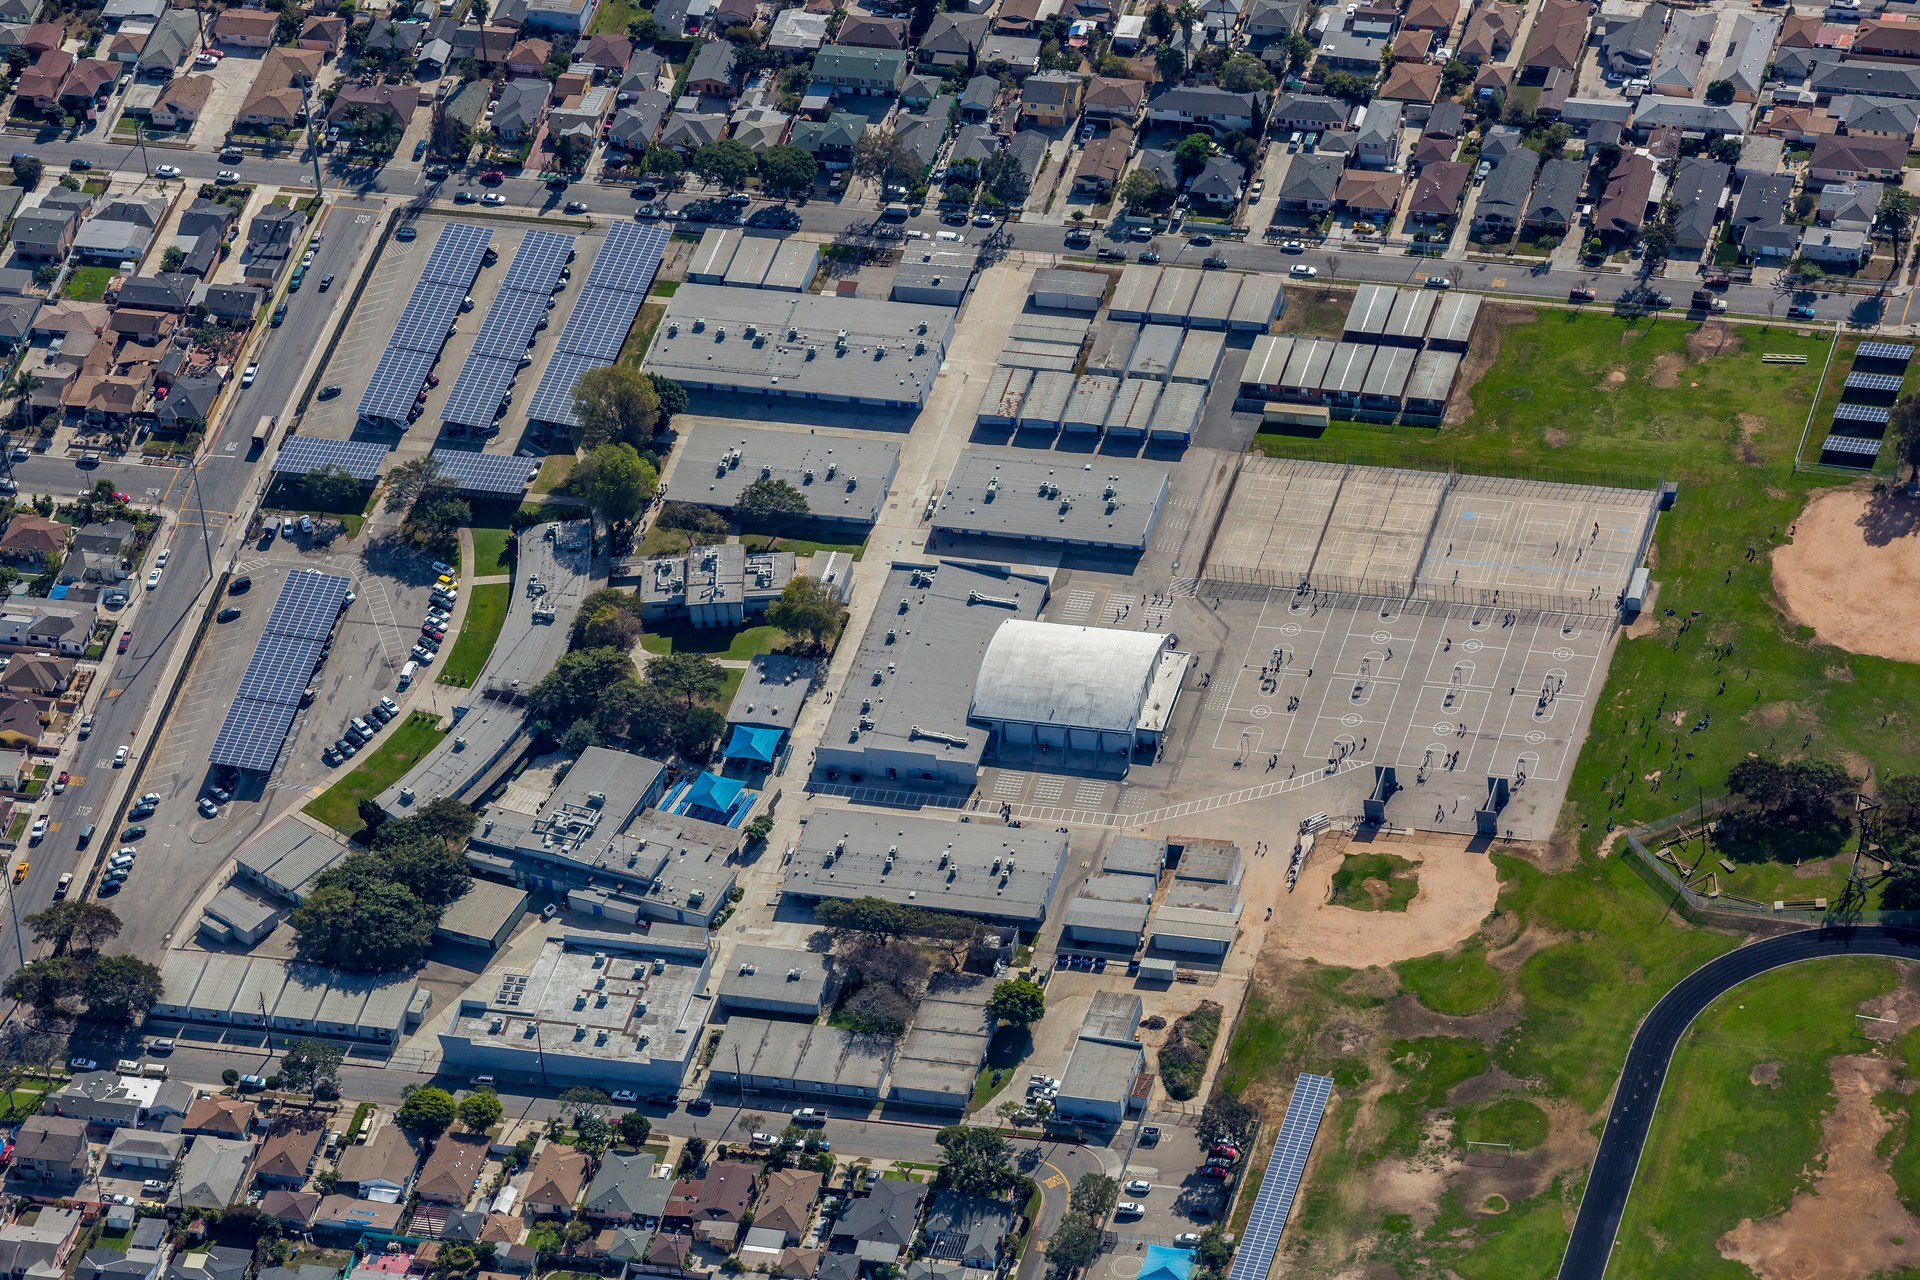 overhead view of Lennox Middle School with solar panels